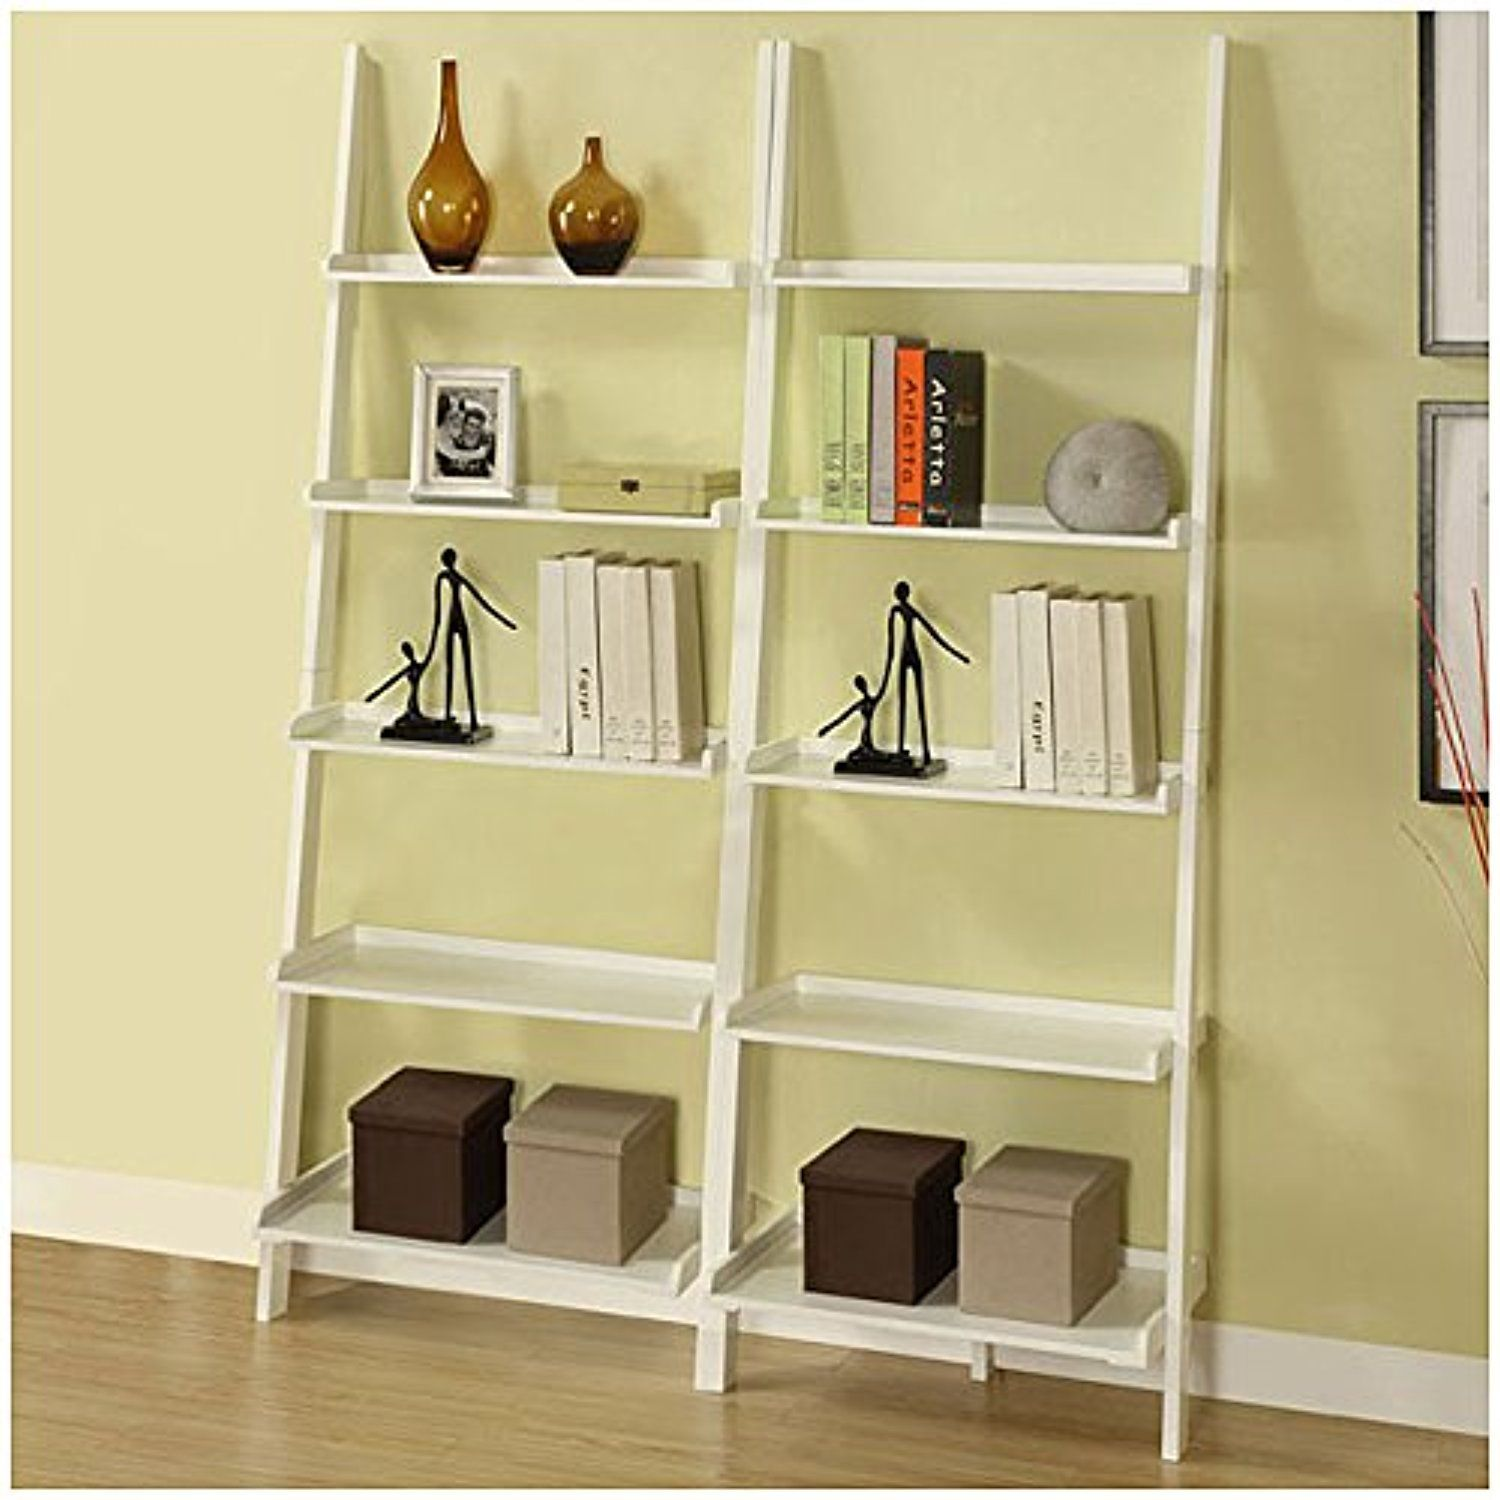 White fivetier piece open shelves leaning for more storage